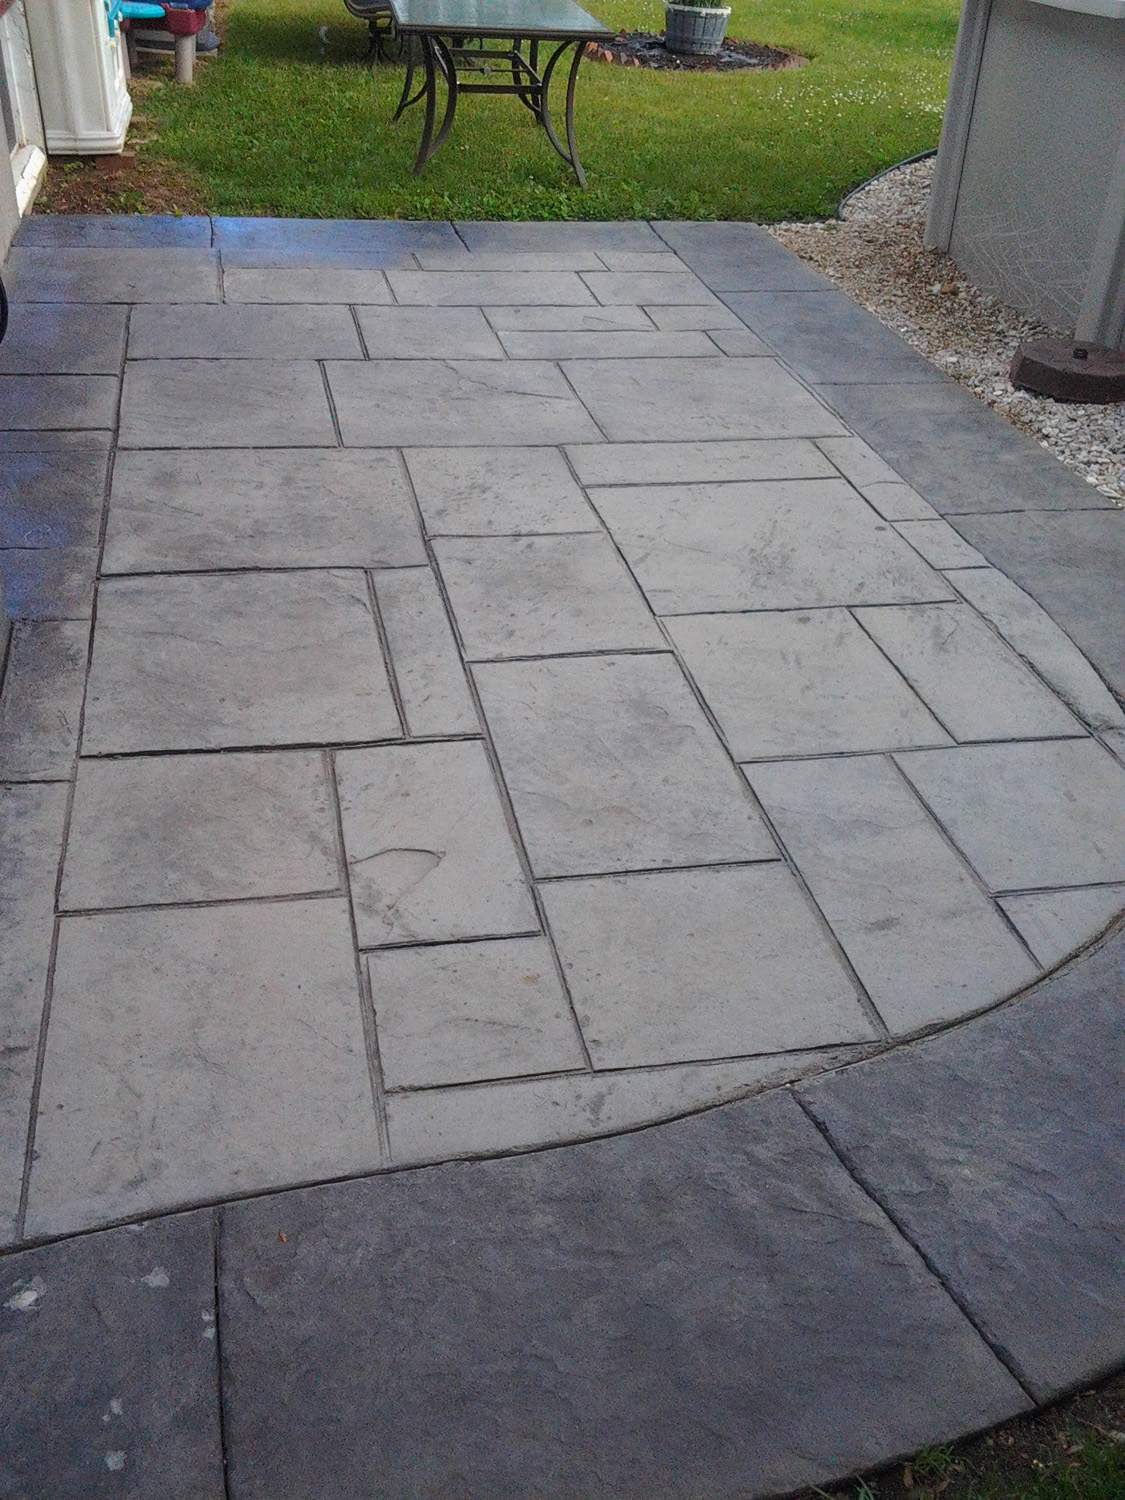 Solomon integral colors, release agents and sealers used.